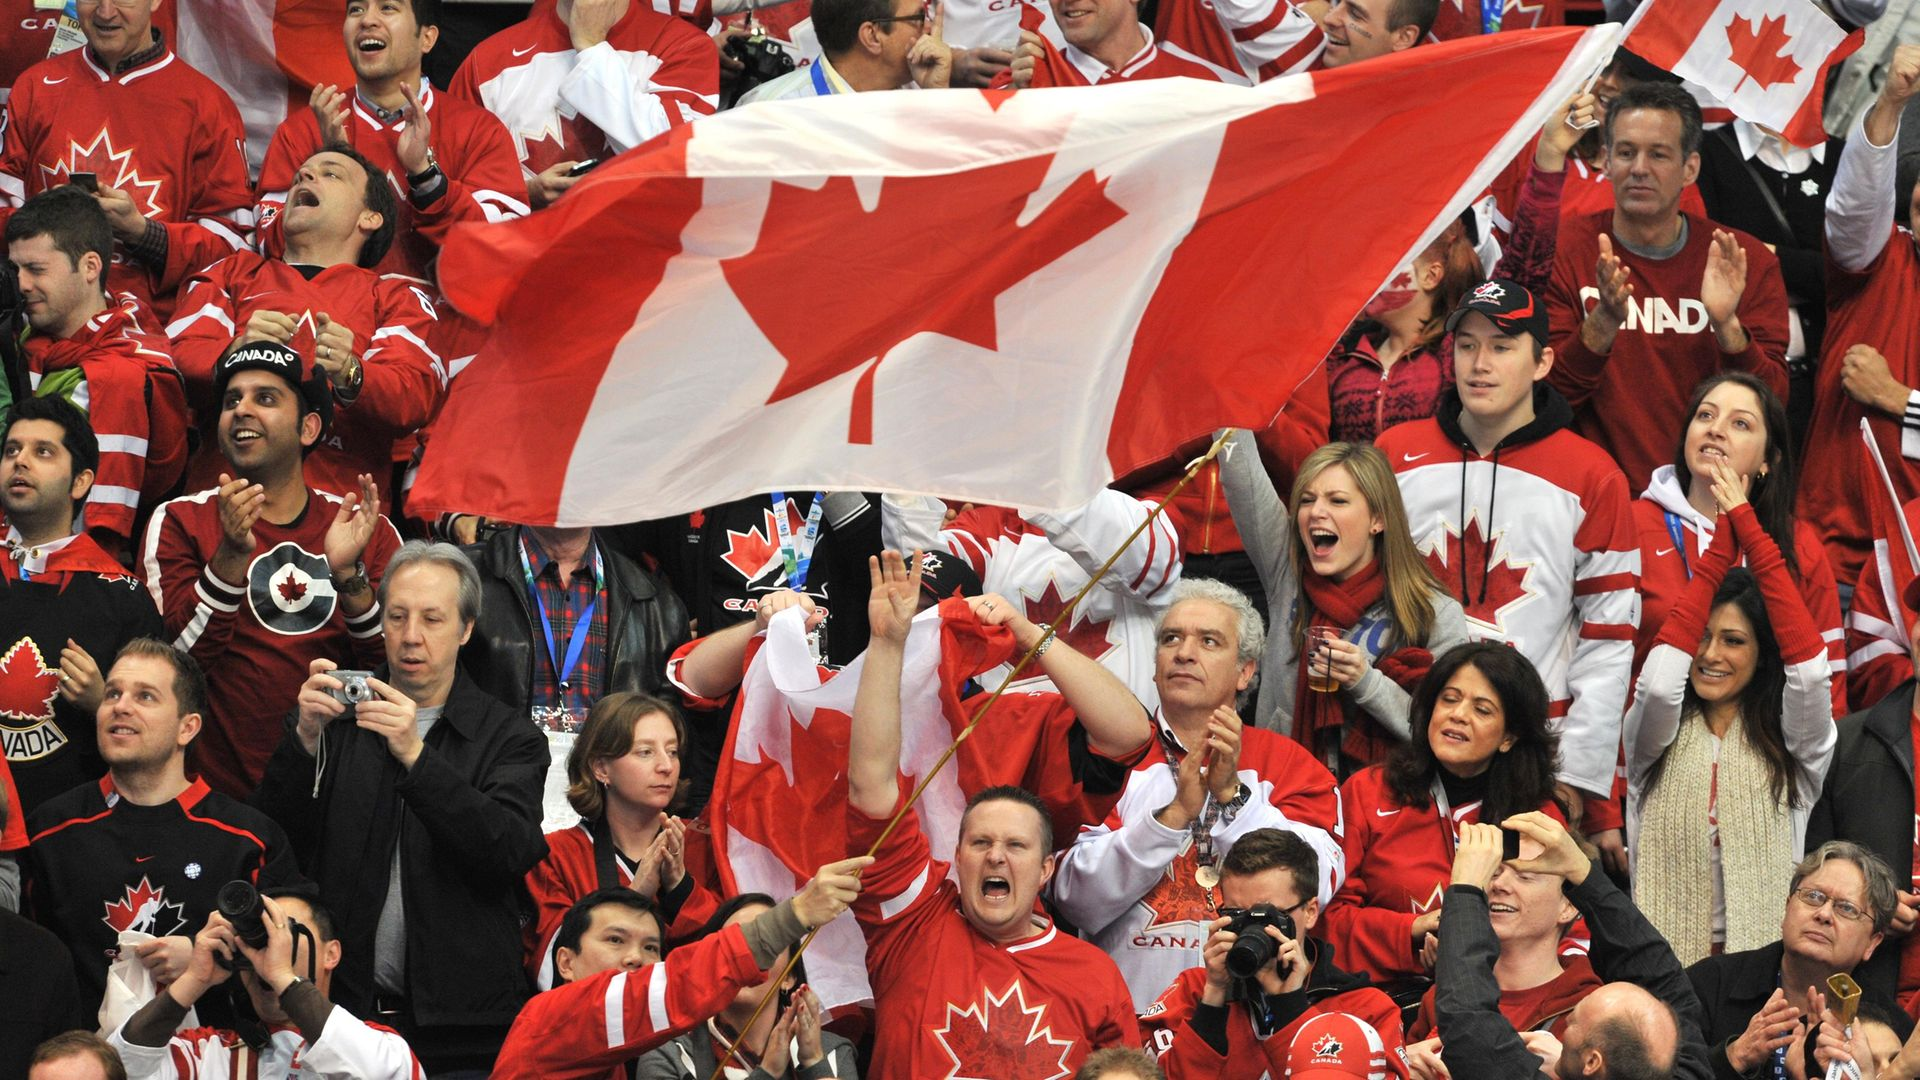 Canadian fans during an Olympic ice hockey match against the US in Vancouver, in 2010 - Credit: AFP via Getty Images